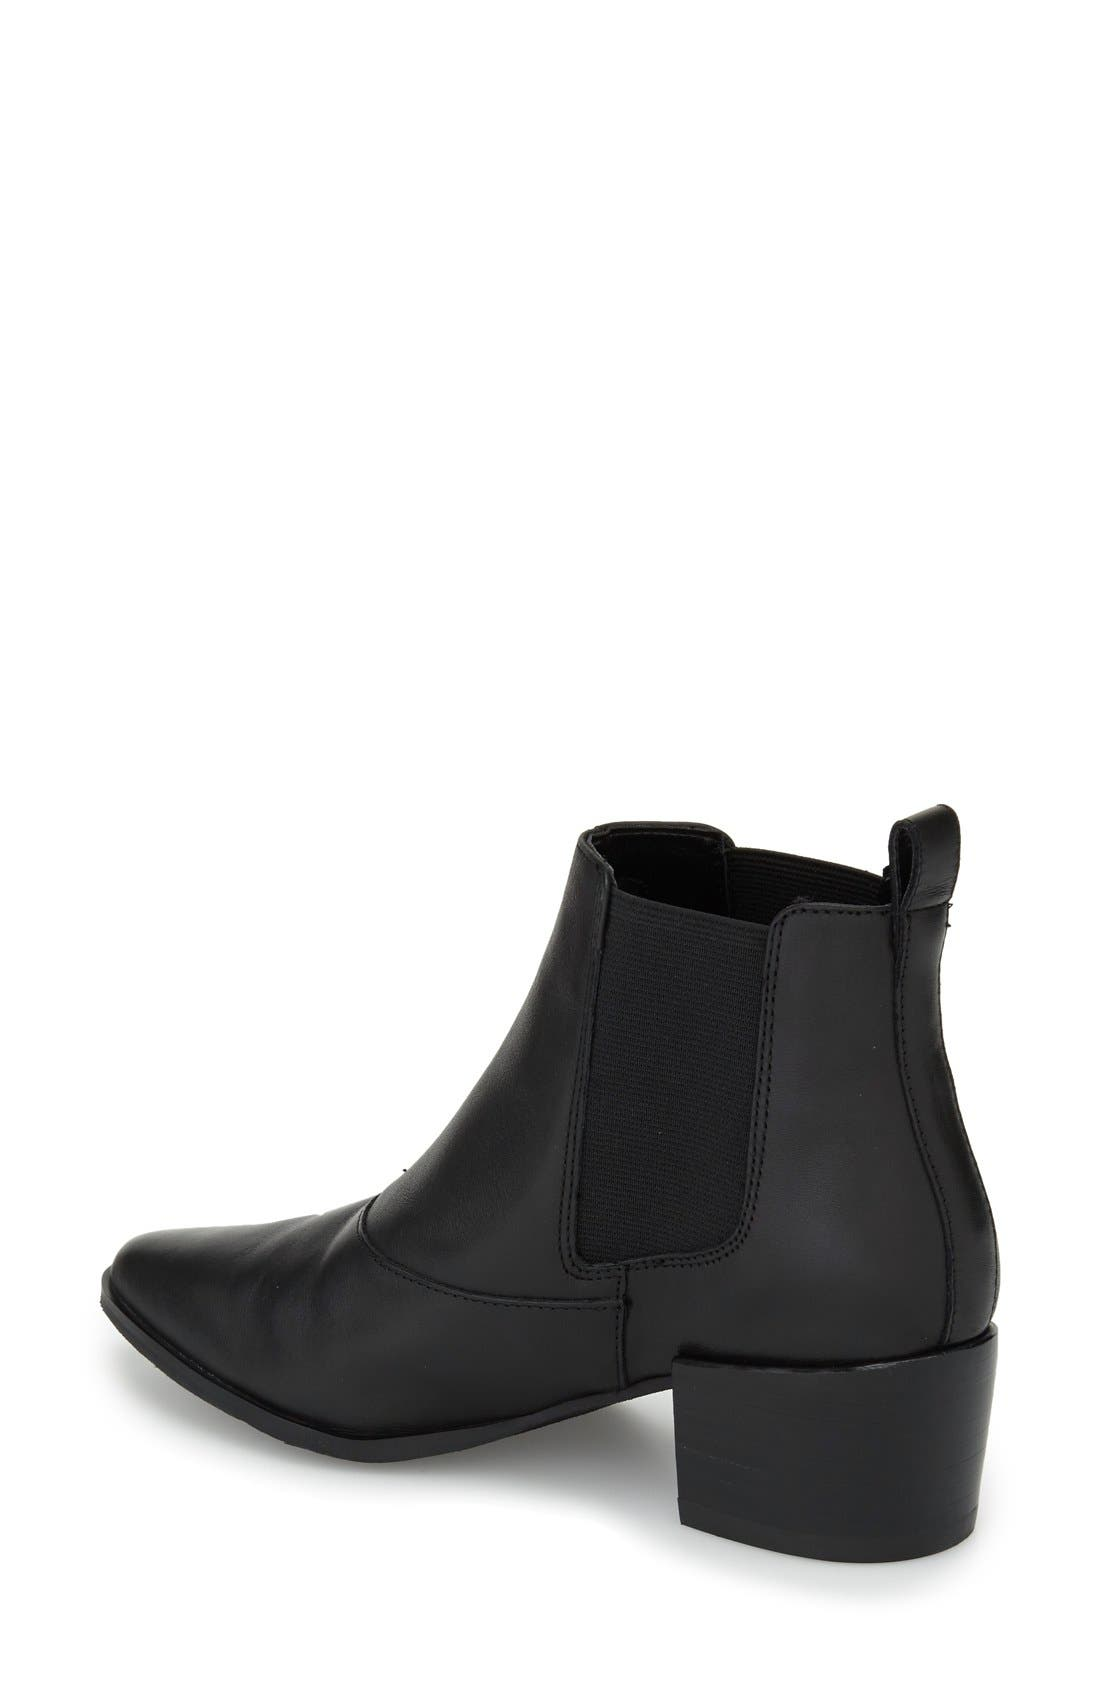 Steve Madden Vanity Ankle Bootie wSbdyd4S